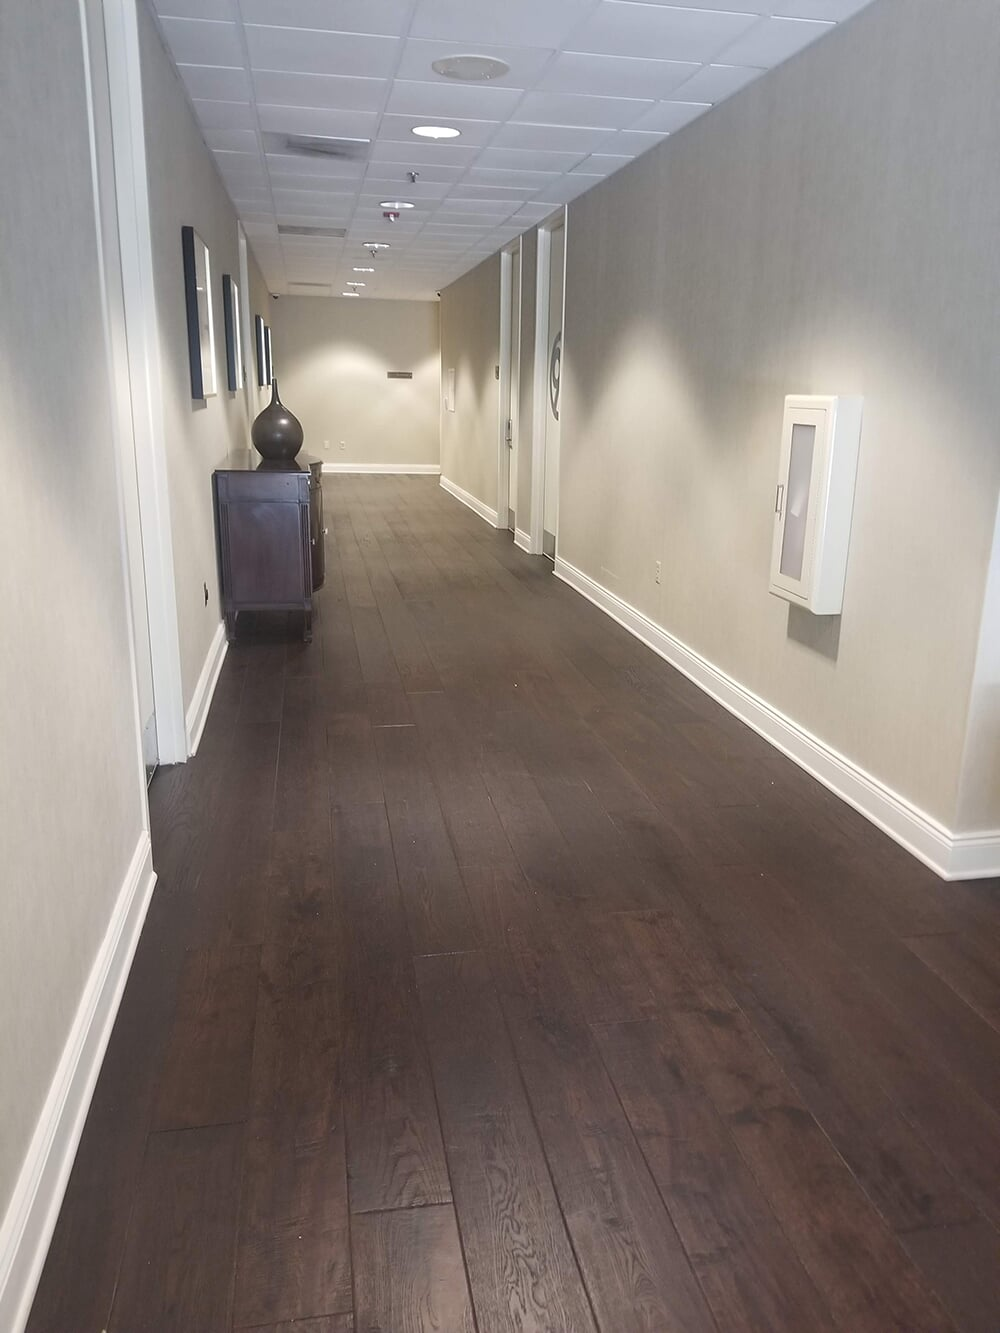 Hallway flooring installation in Spindale, NC from BPS Southeast